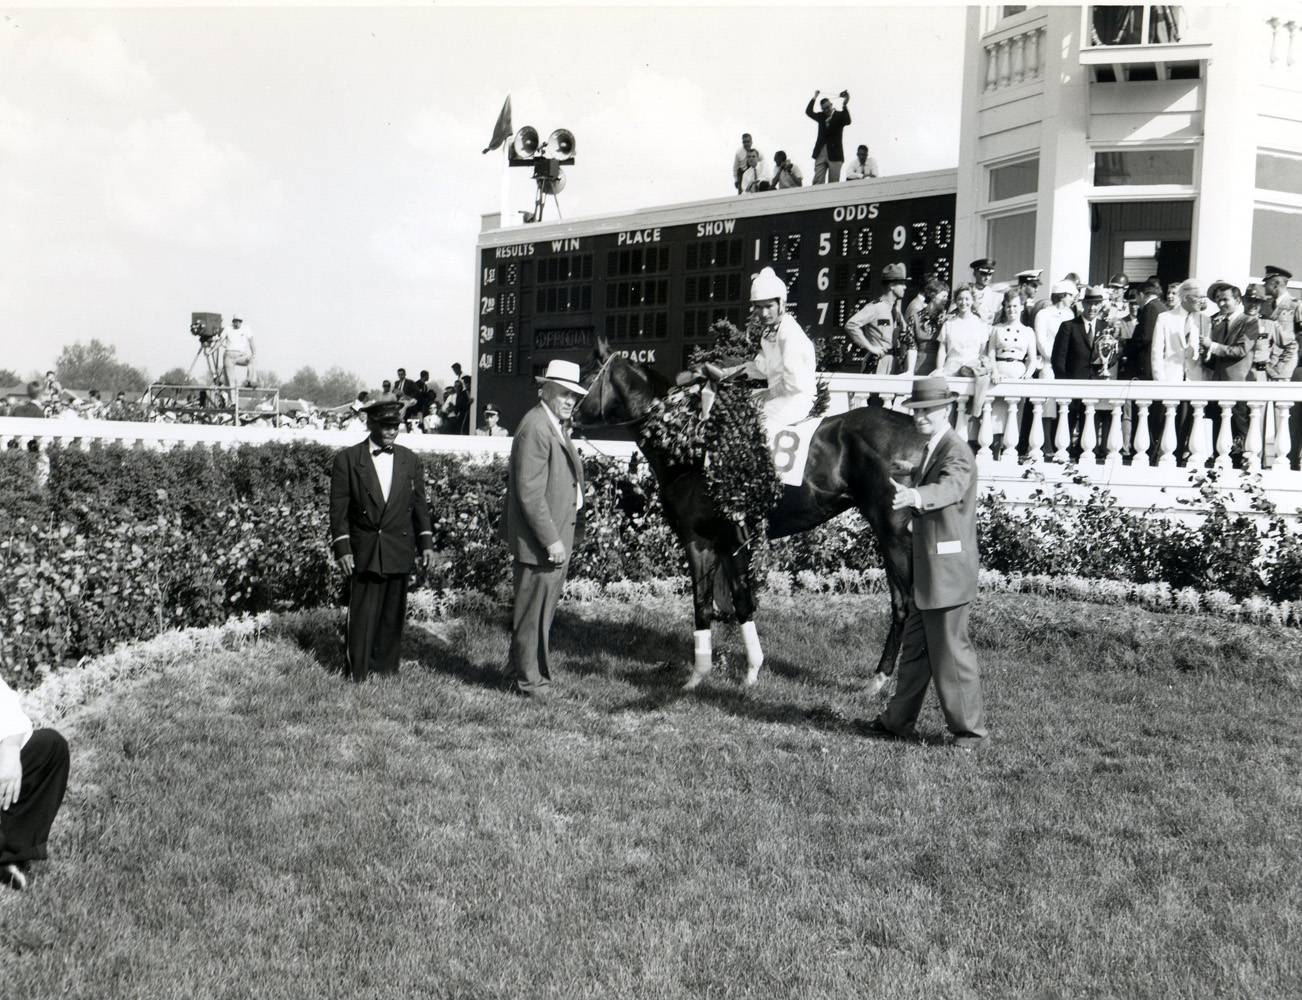 Frank E. Childs in the winner's circle with Tomy Lee (Bill Shoemaker up) for the 1959 Kentucky Derby (Churchill Downs Inc./Kinetic Corp. /Museum Collection)